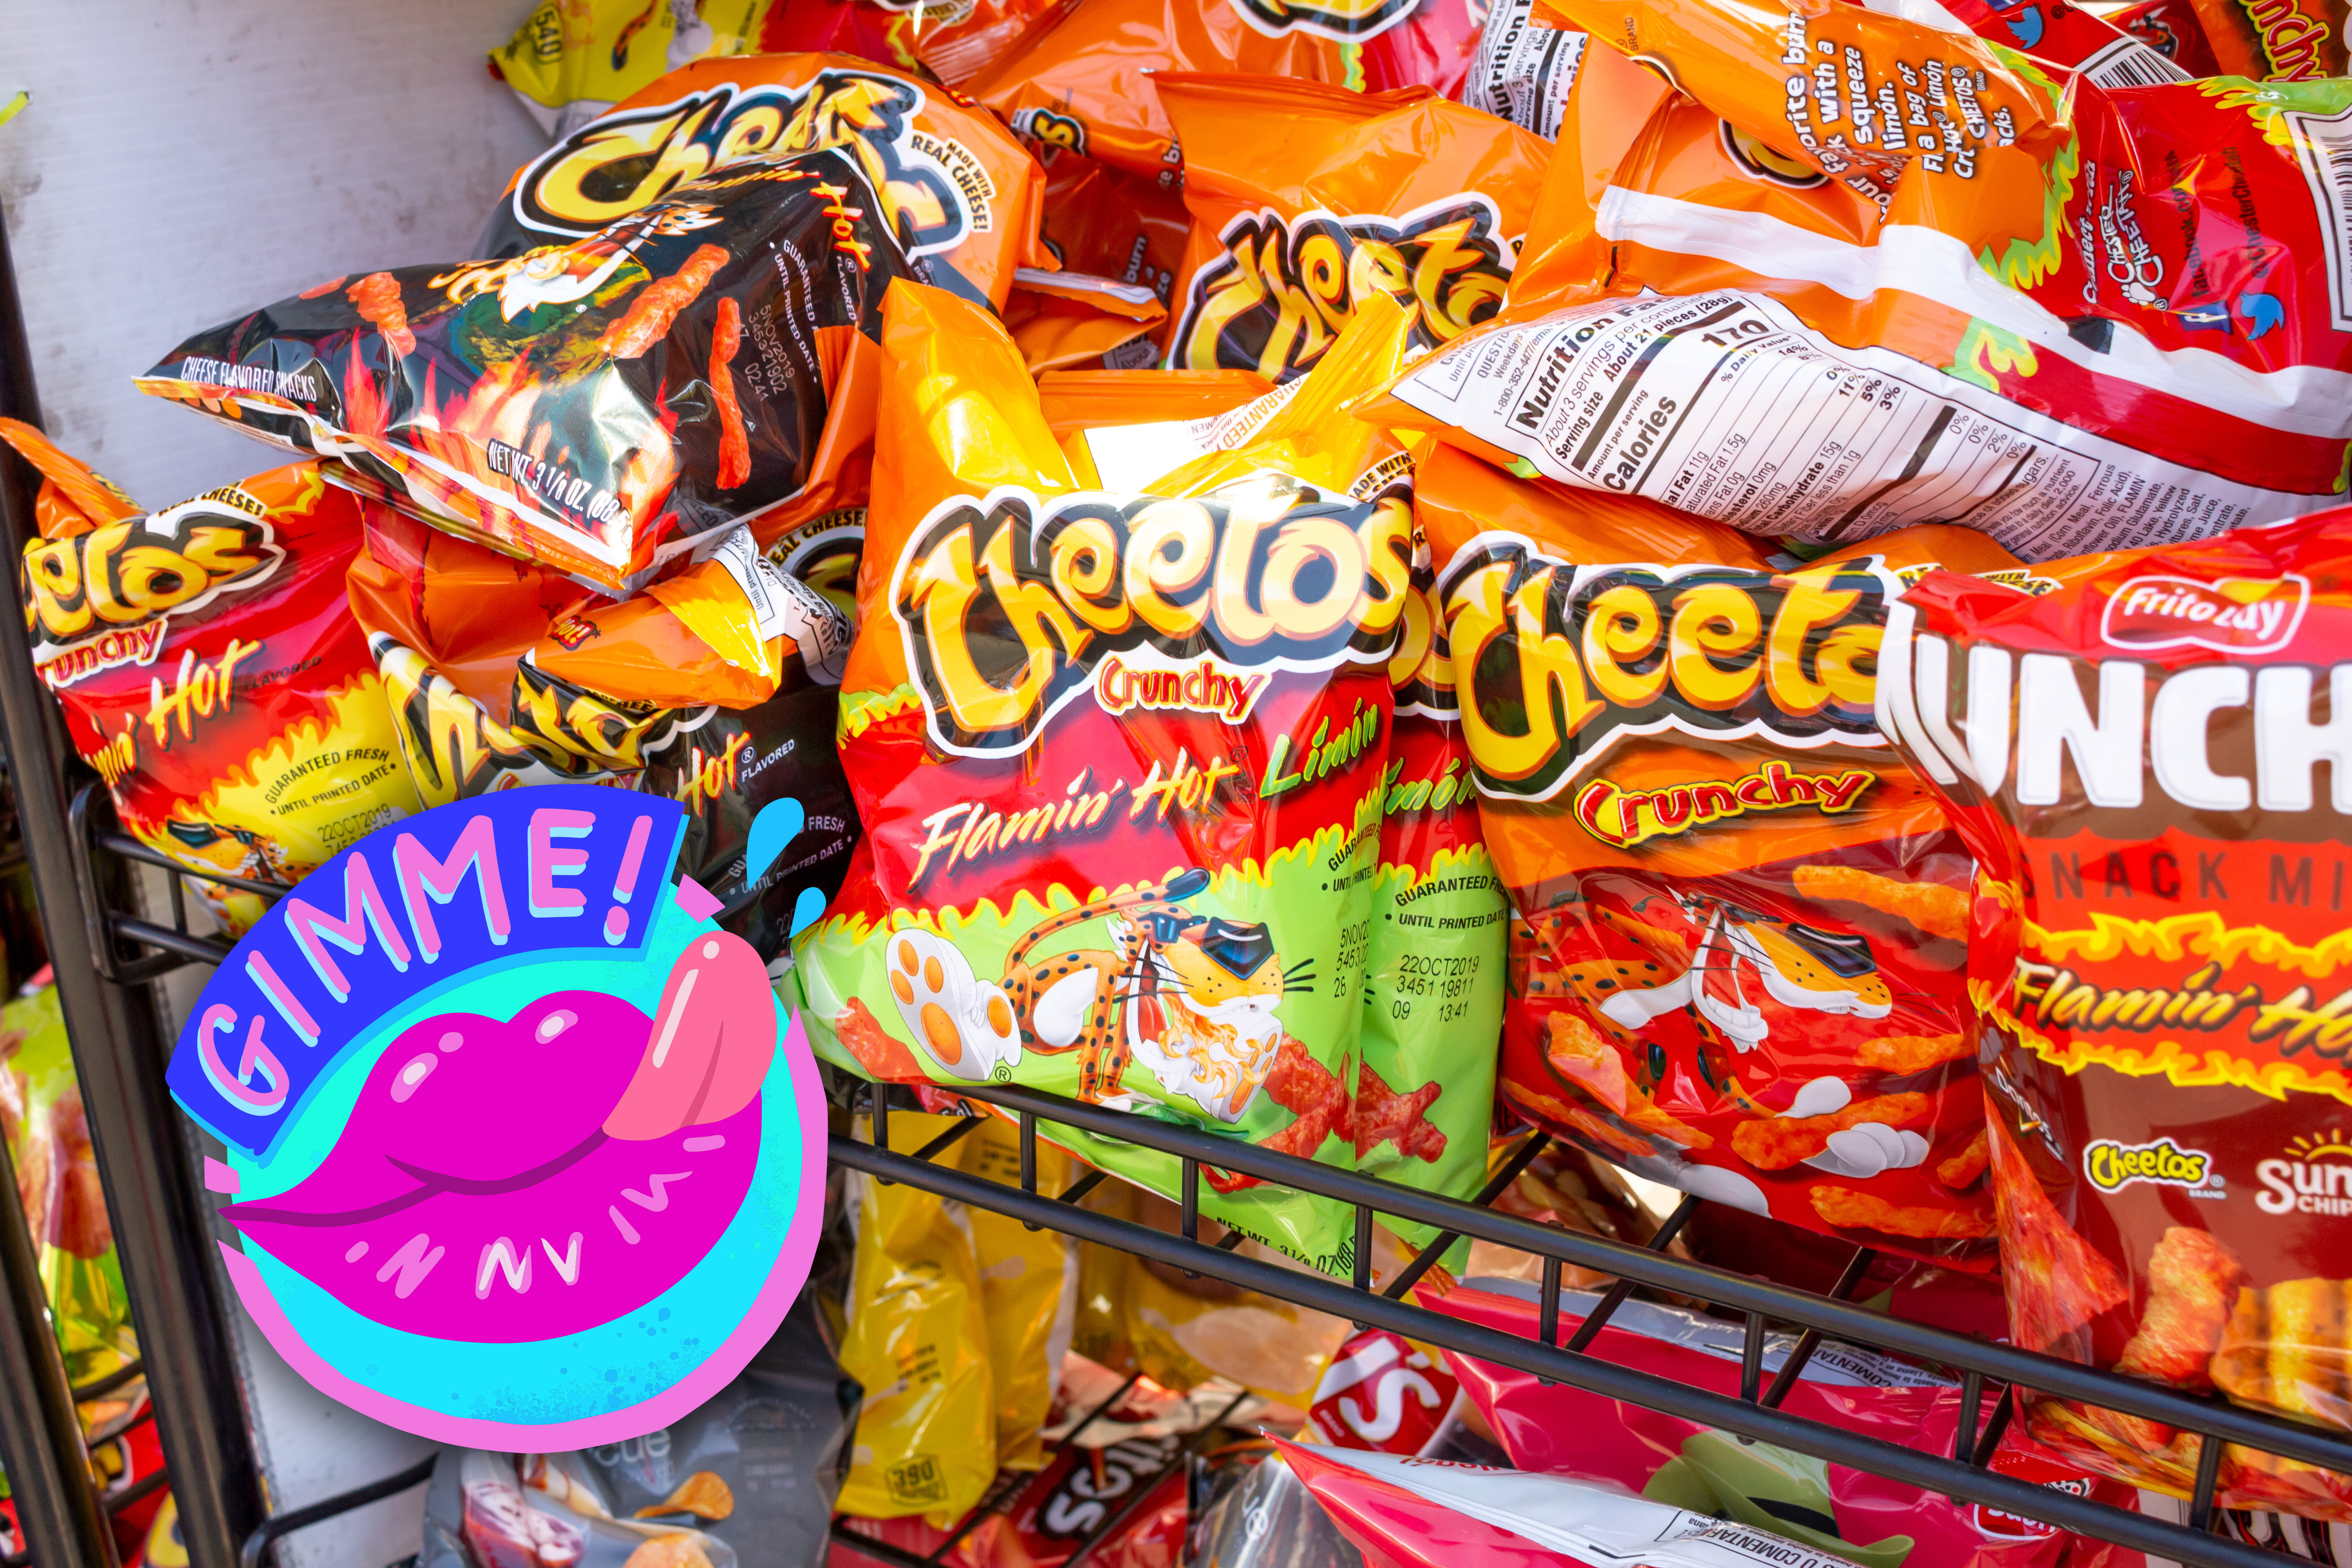 A rack in a store containing snack-sized bags of Cheetos, Flamin' Hot Cheetos, and Munchies.